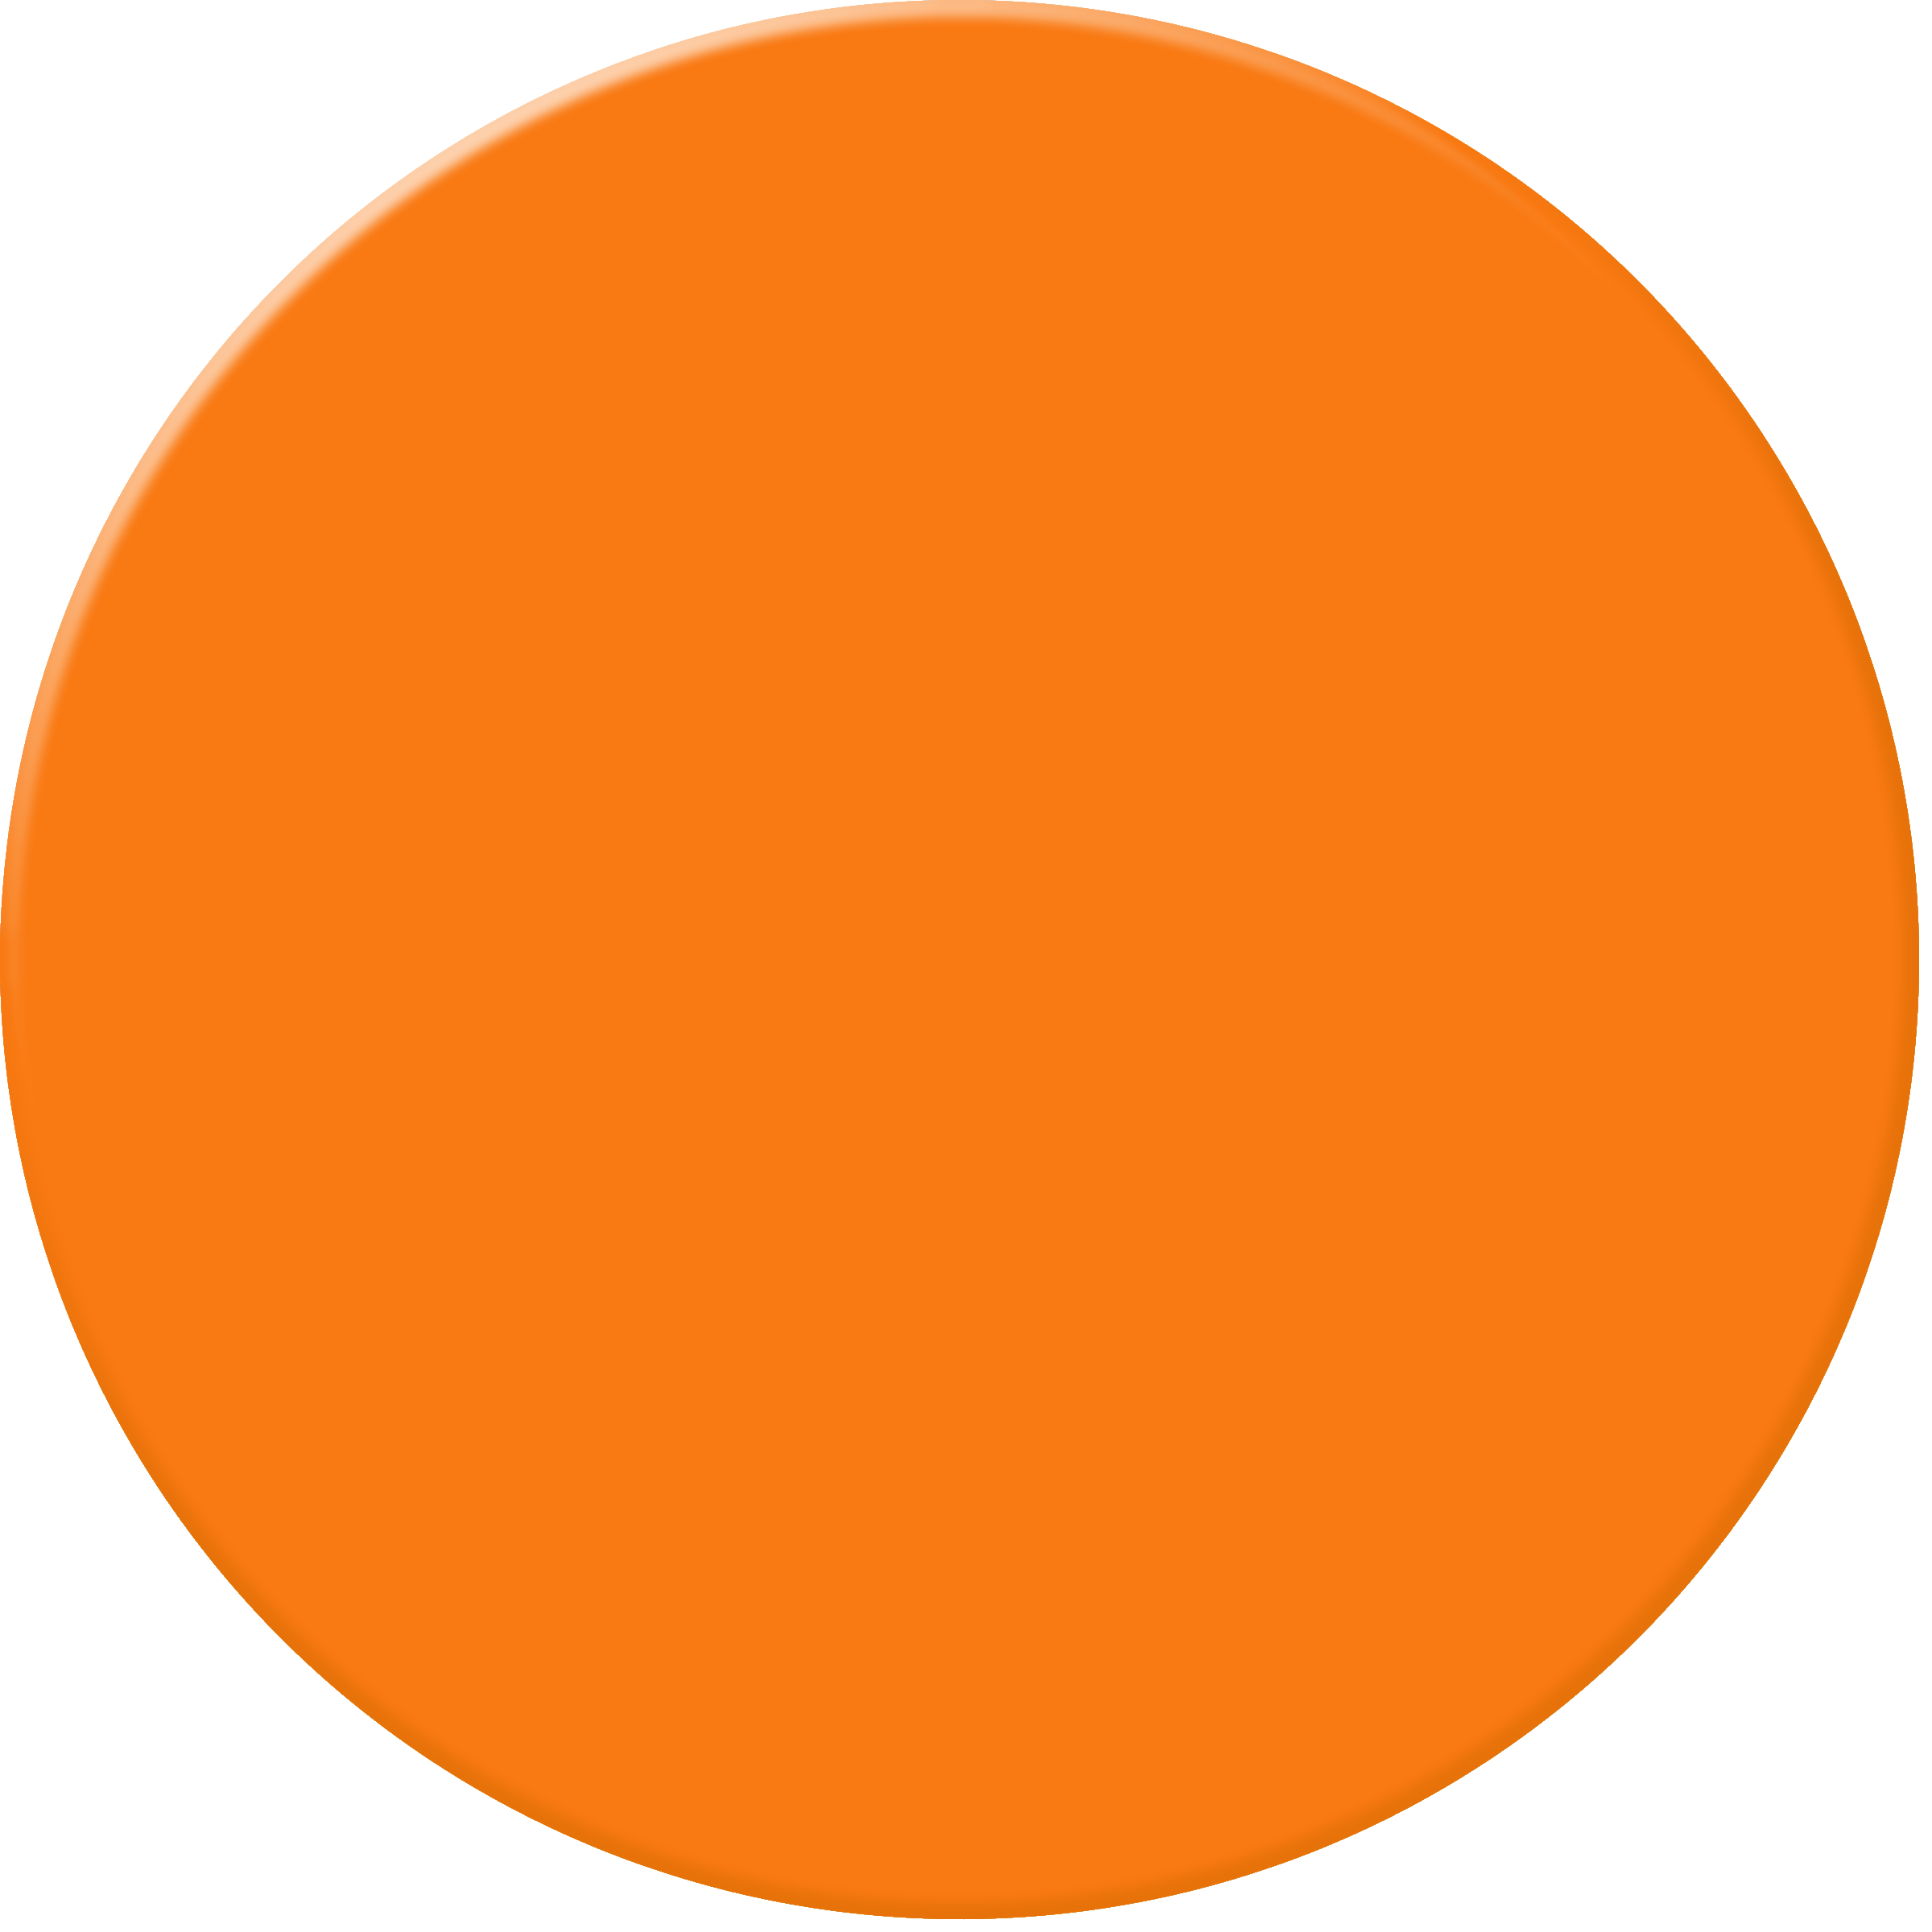 Free images at clker. Ball clip orange thing image free download